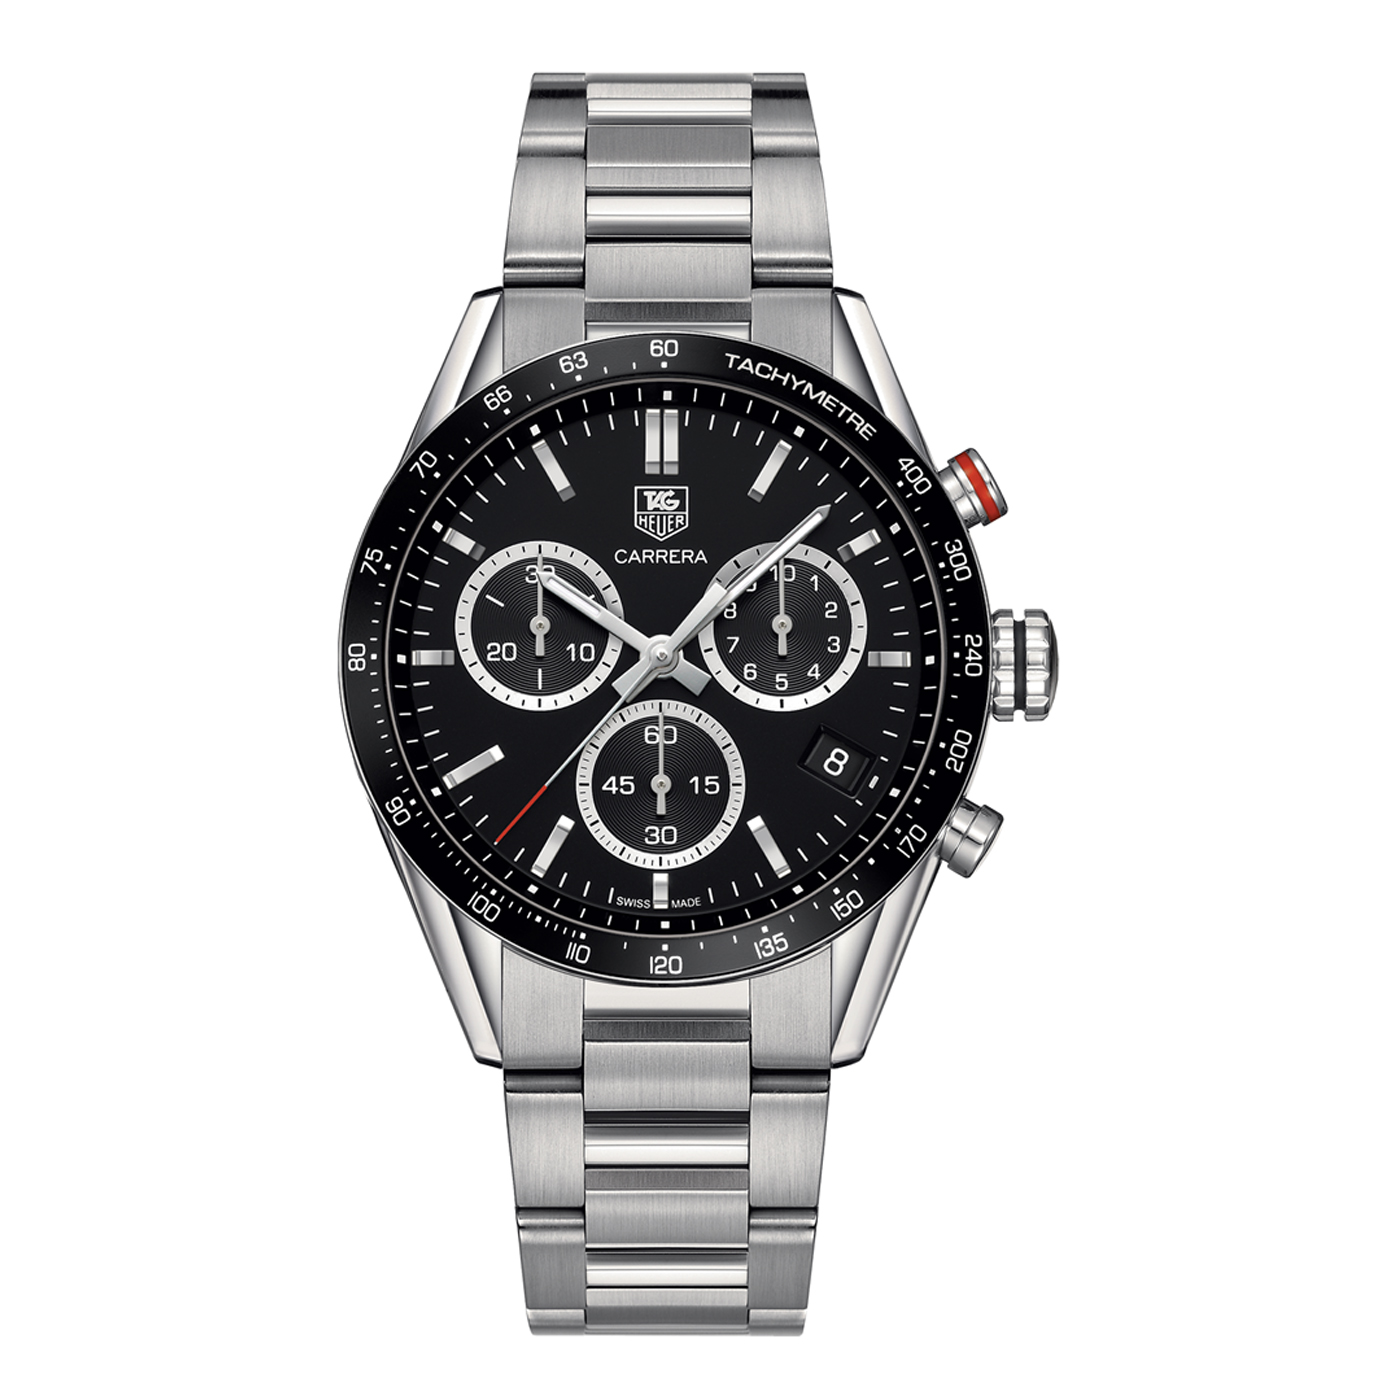 New Tag Heuer Carrera 43mm Chrono Date Quartz Mens Watch ...